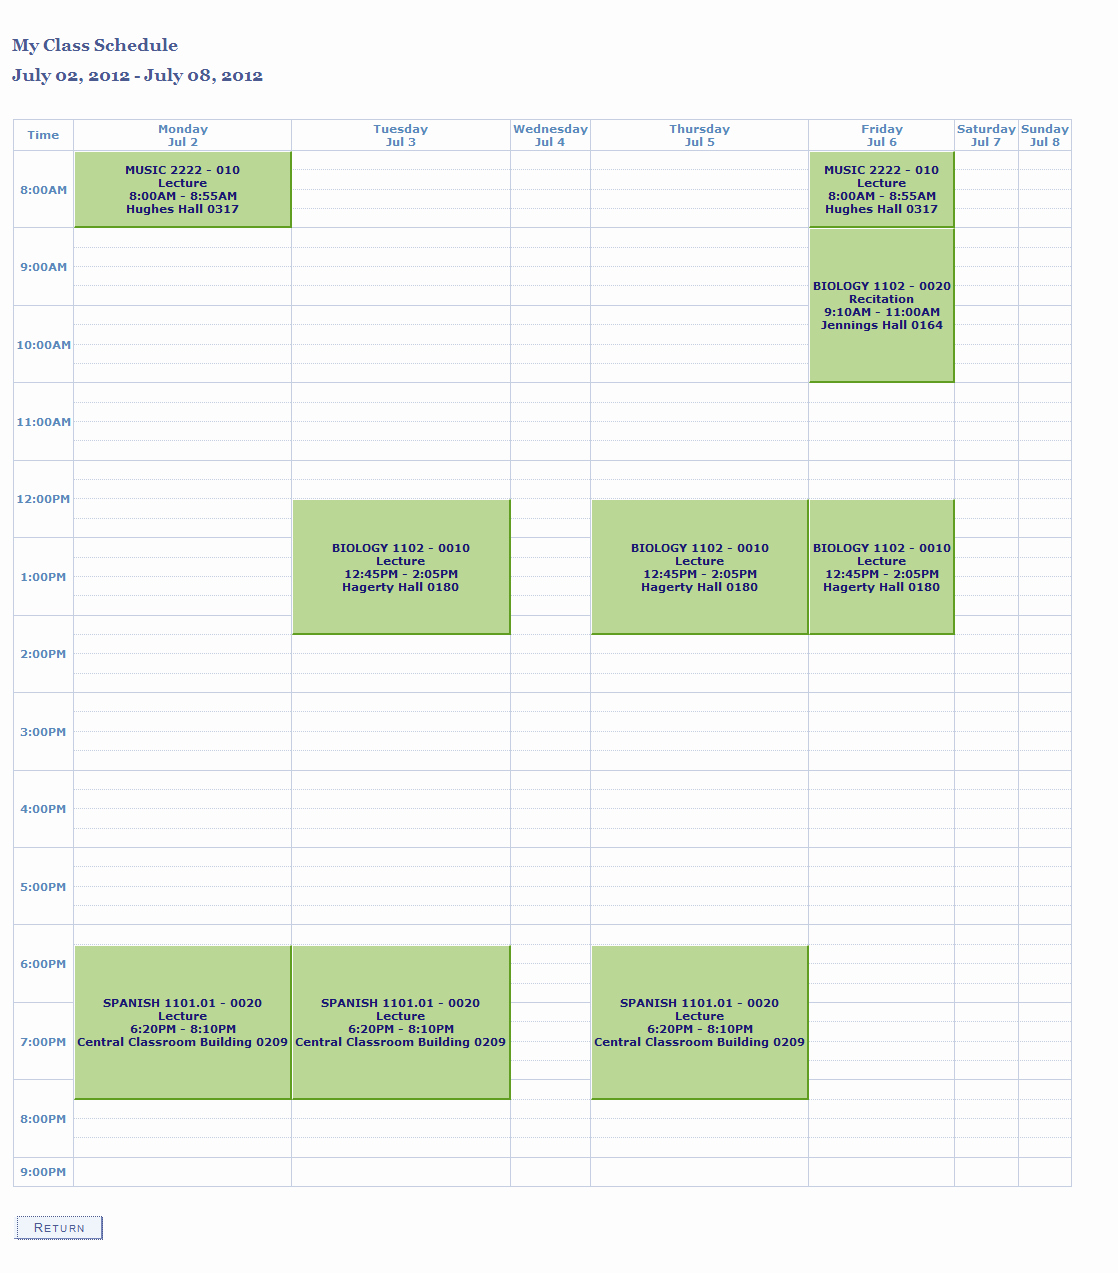 Weekly Class Schedule Template New Weekly Class Schedule Maker